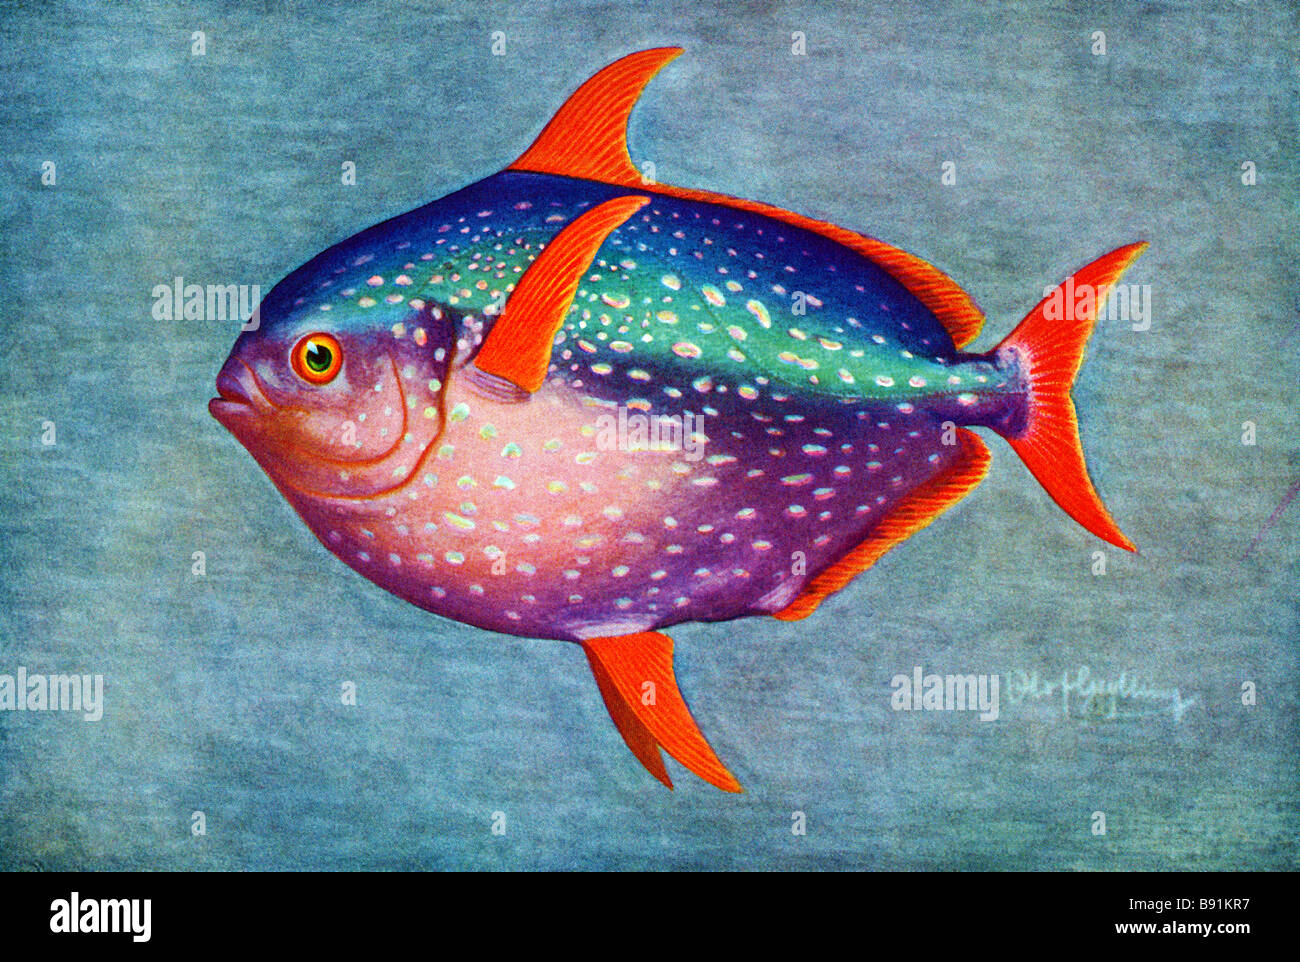 Opah, Lampris guttatus,19th century illustration by Olof Gylling (1850-1928) - Stock Image